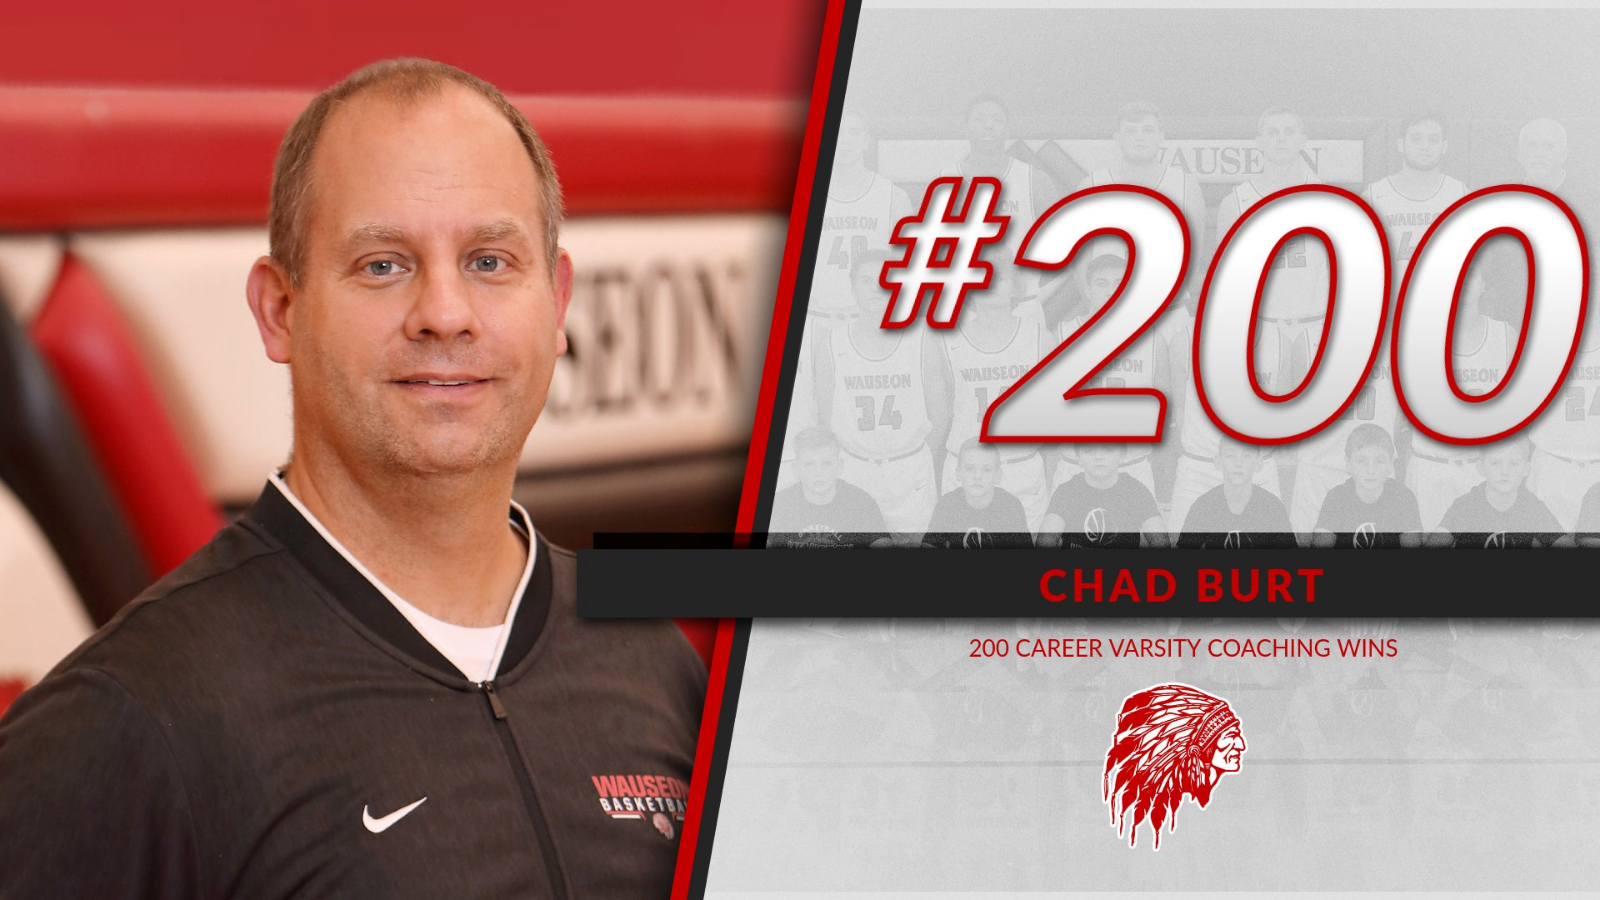 Chad Burt gets career win #200